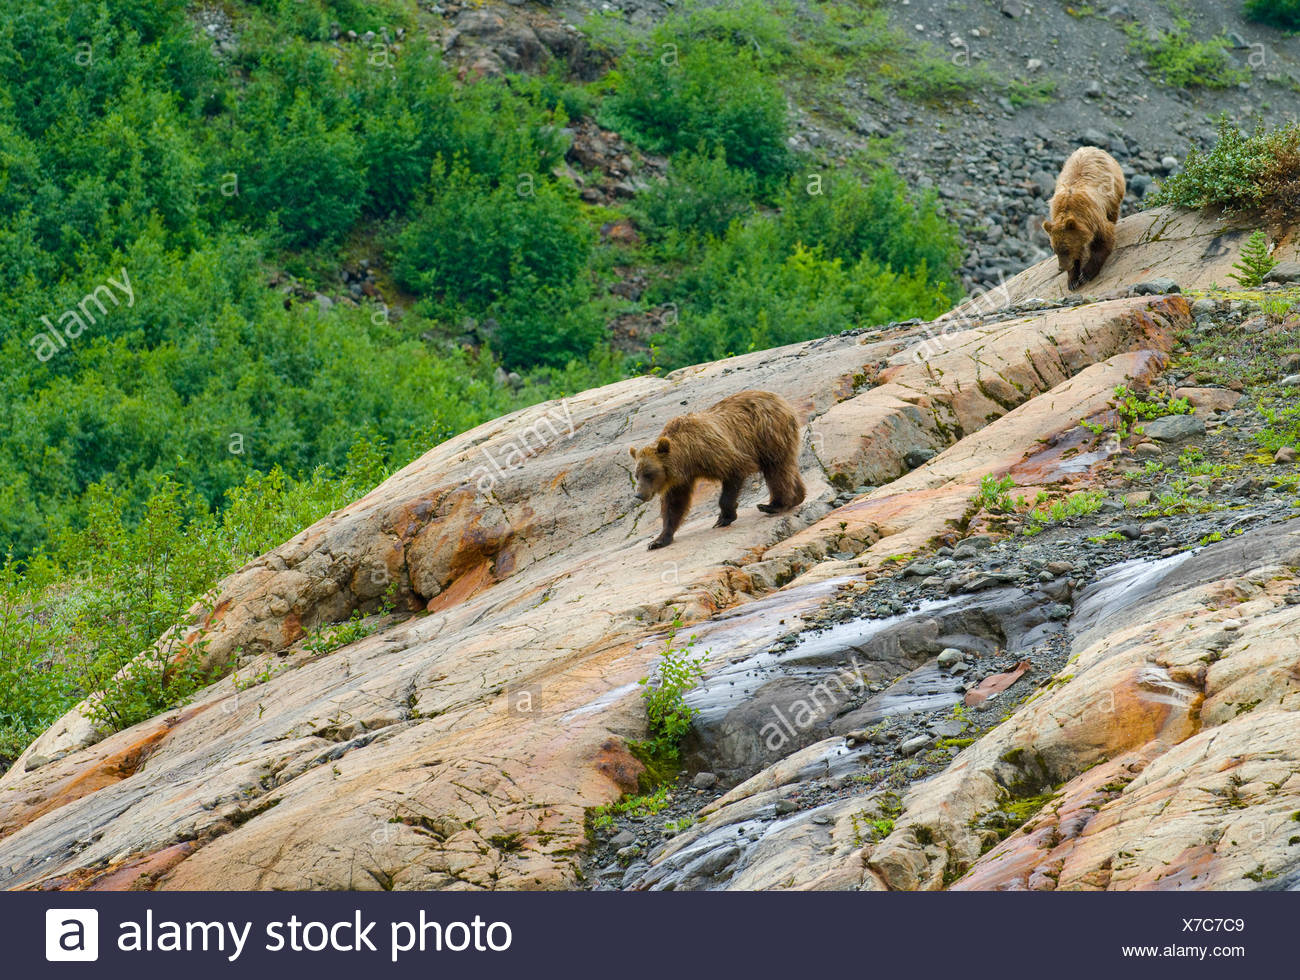 Mother and young female Grizzly bears (Ursus arctos horribilis) descending a rock formation called a Roche Moutonnee created by - Stock Image